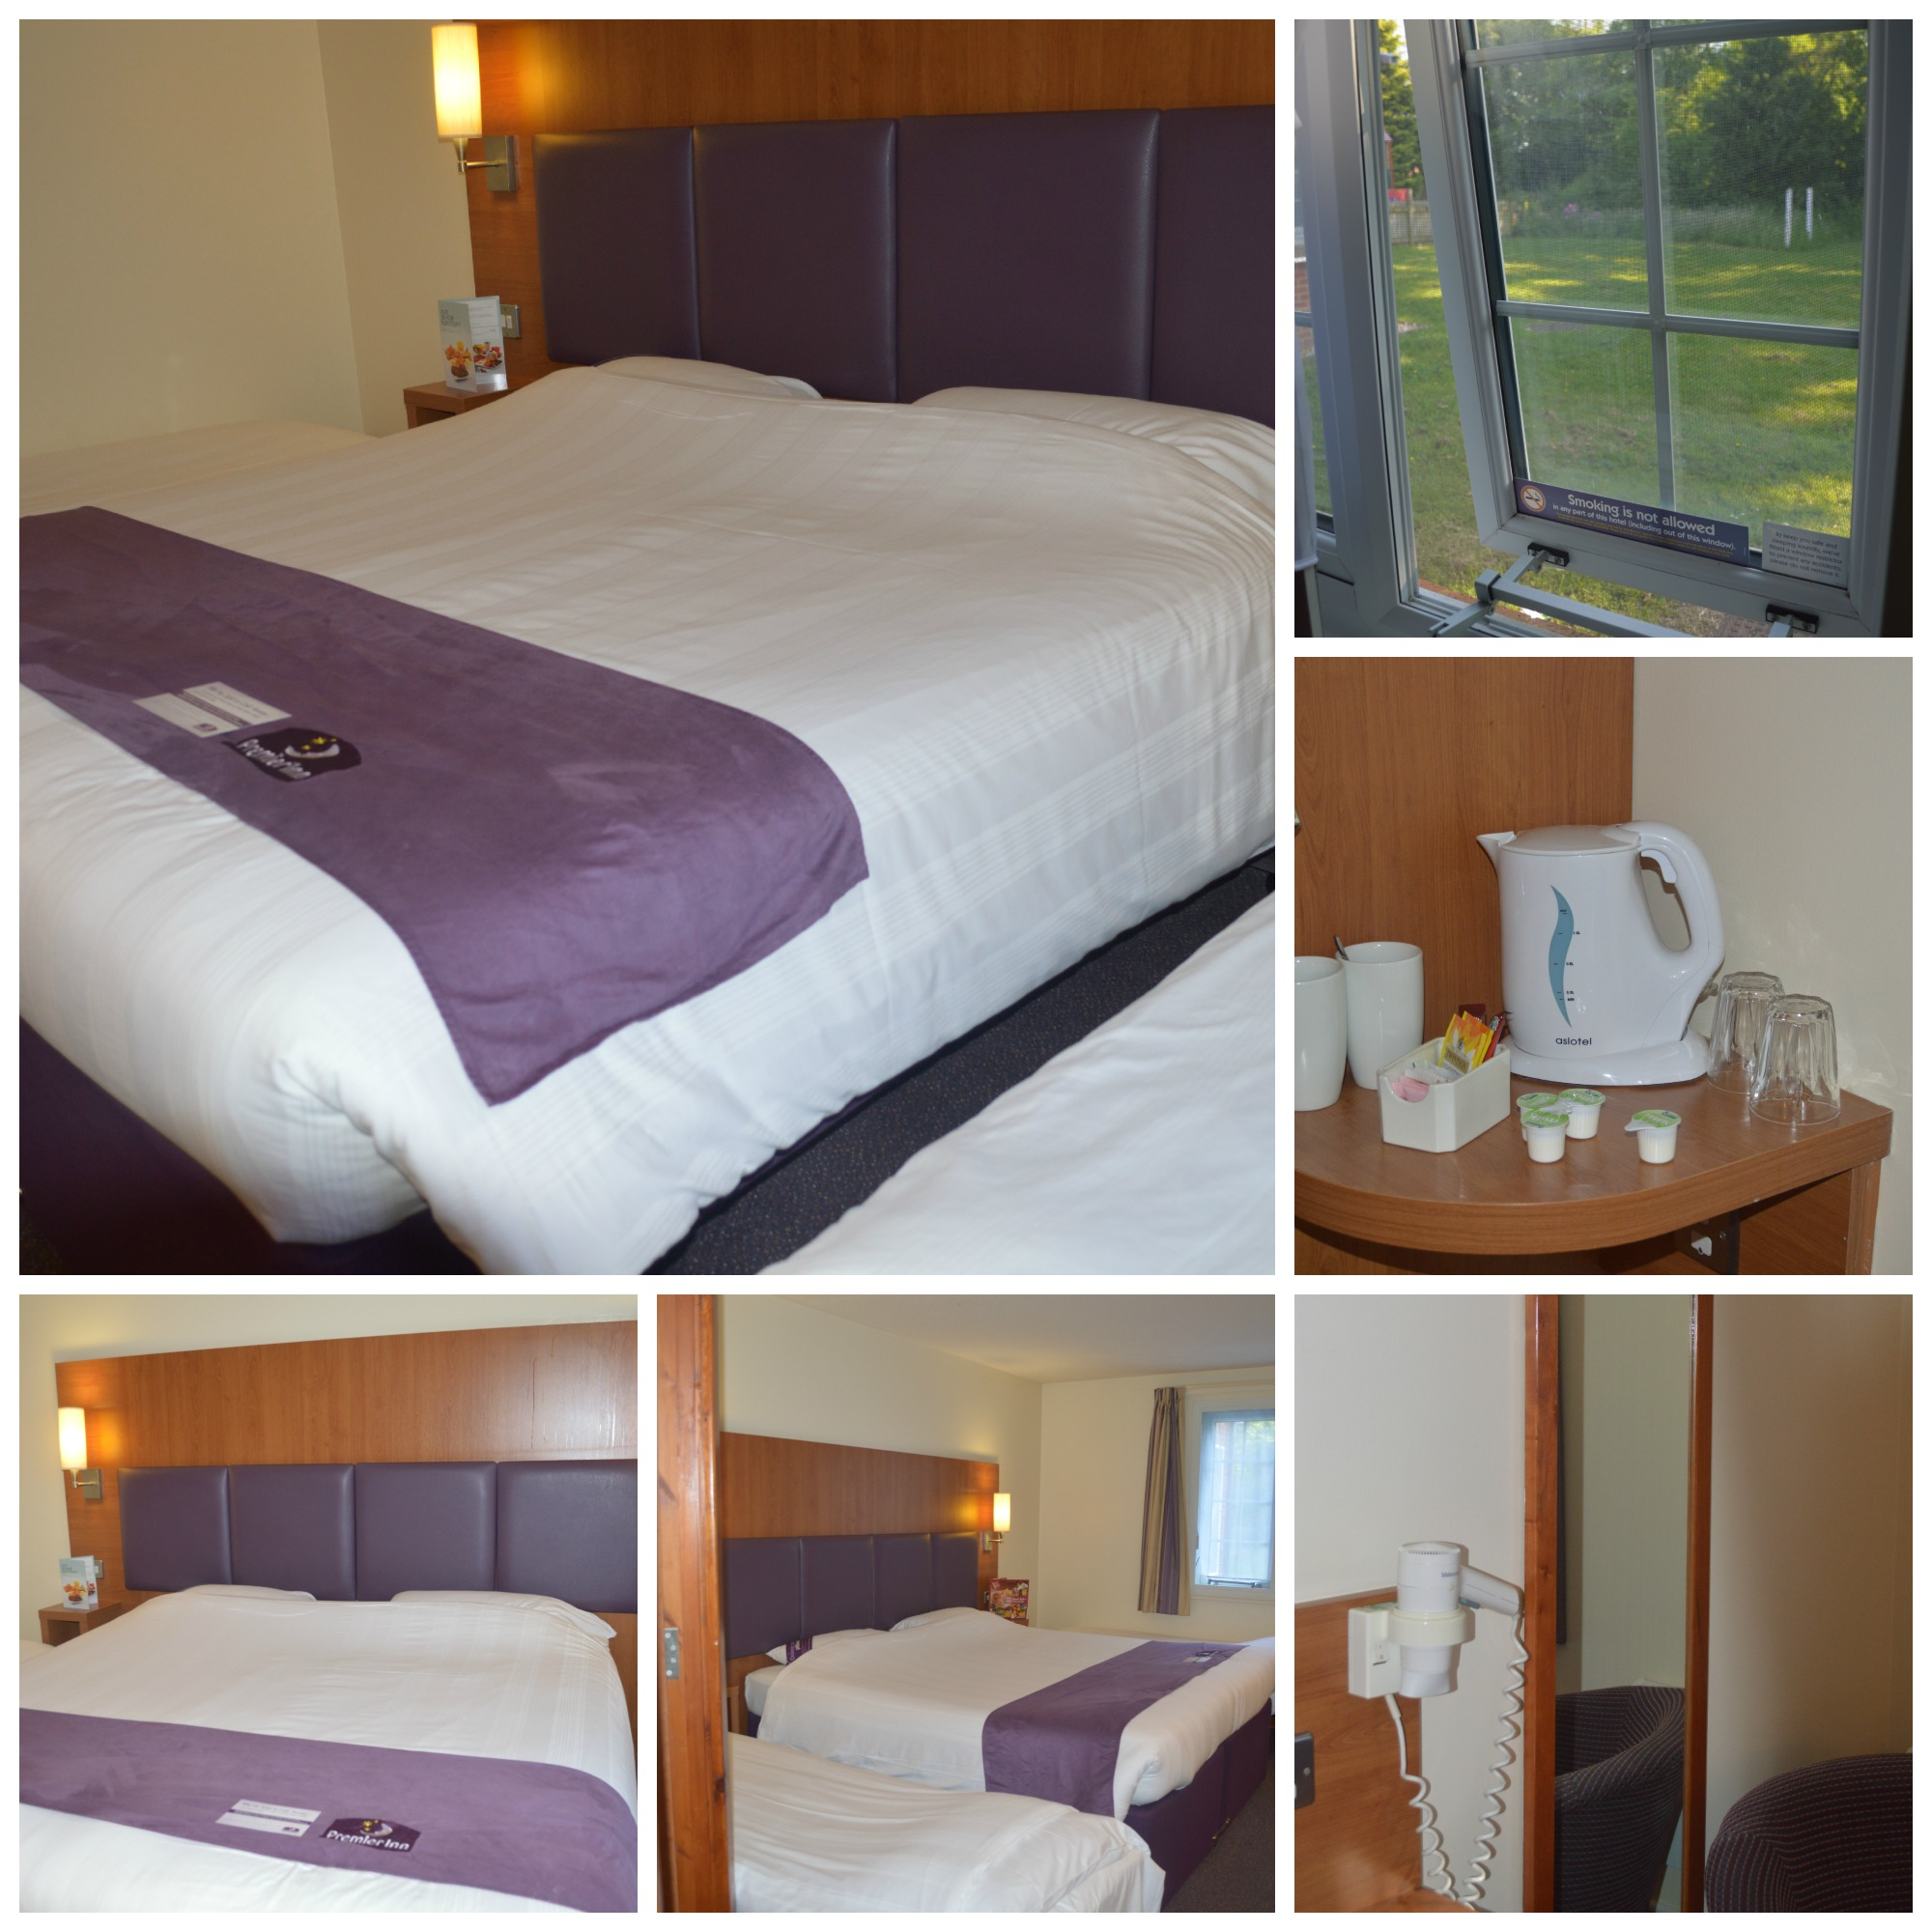 Premier Inn Family Room Facilities